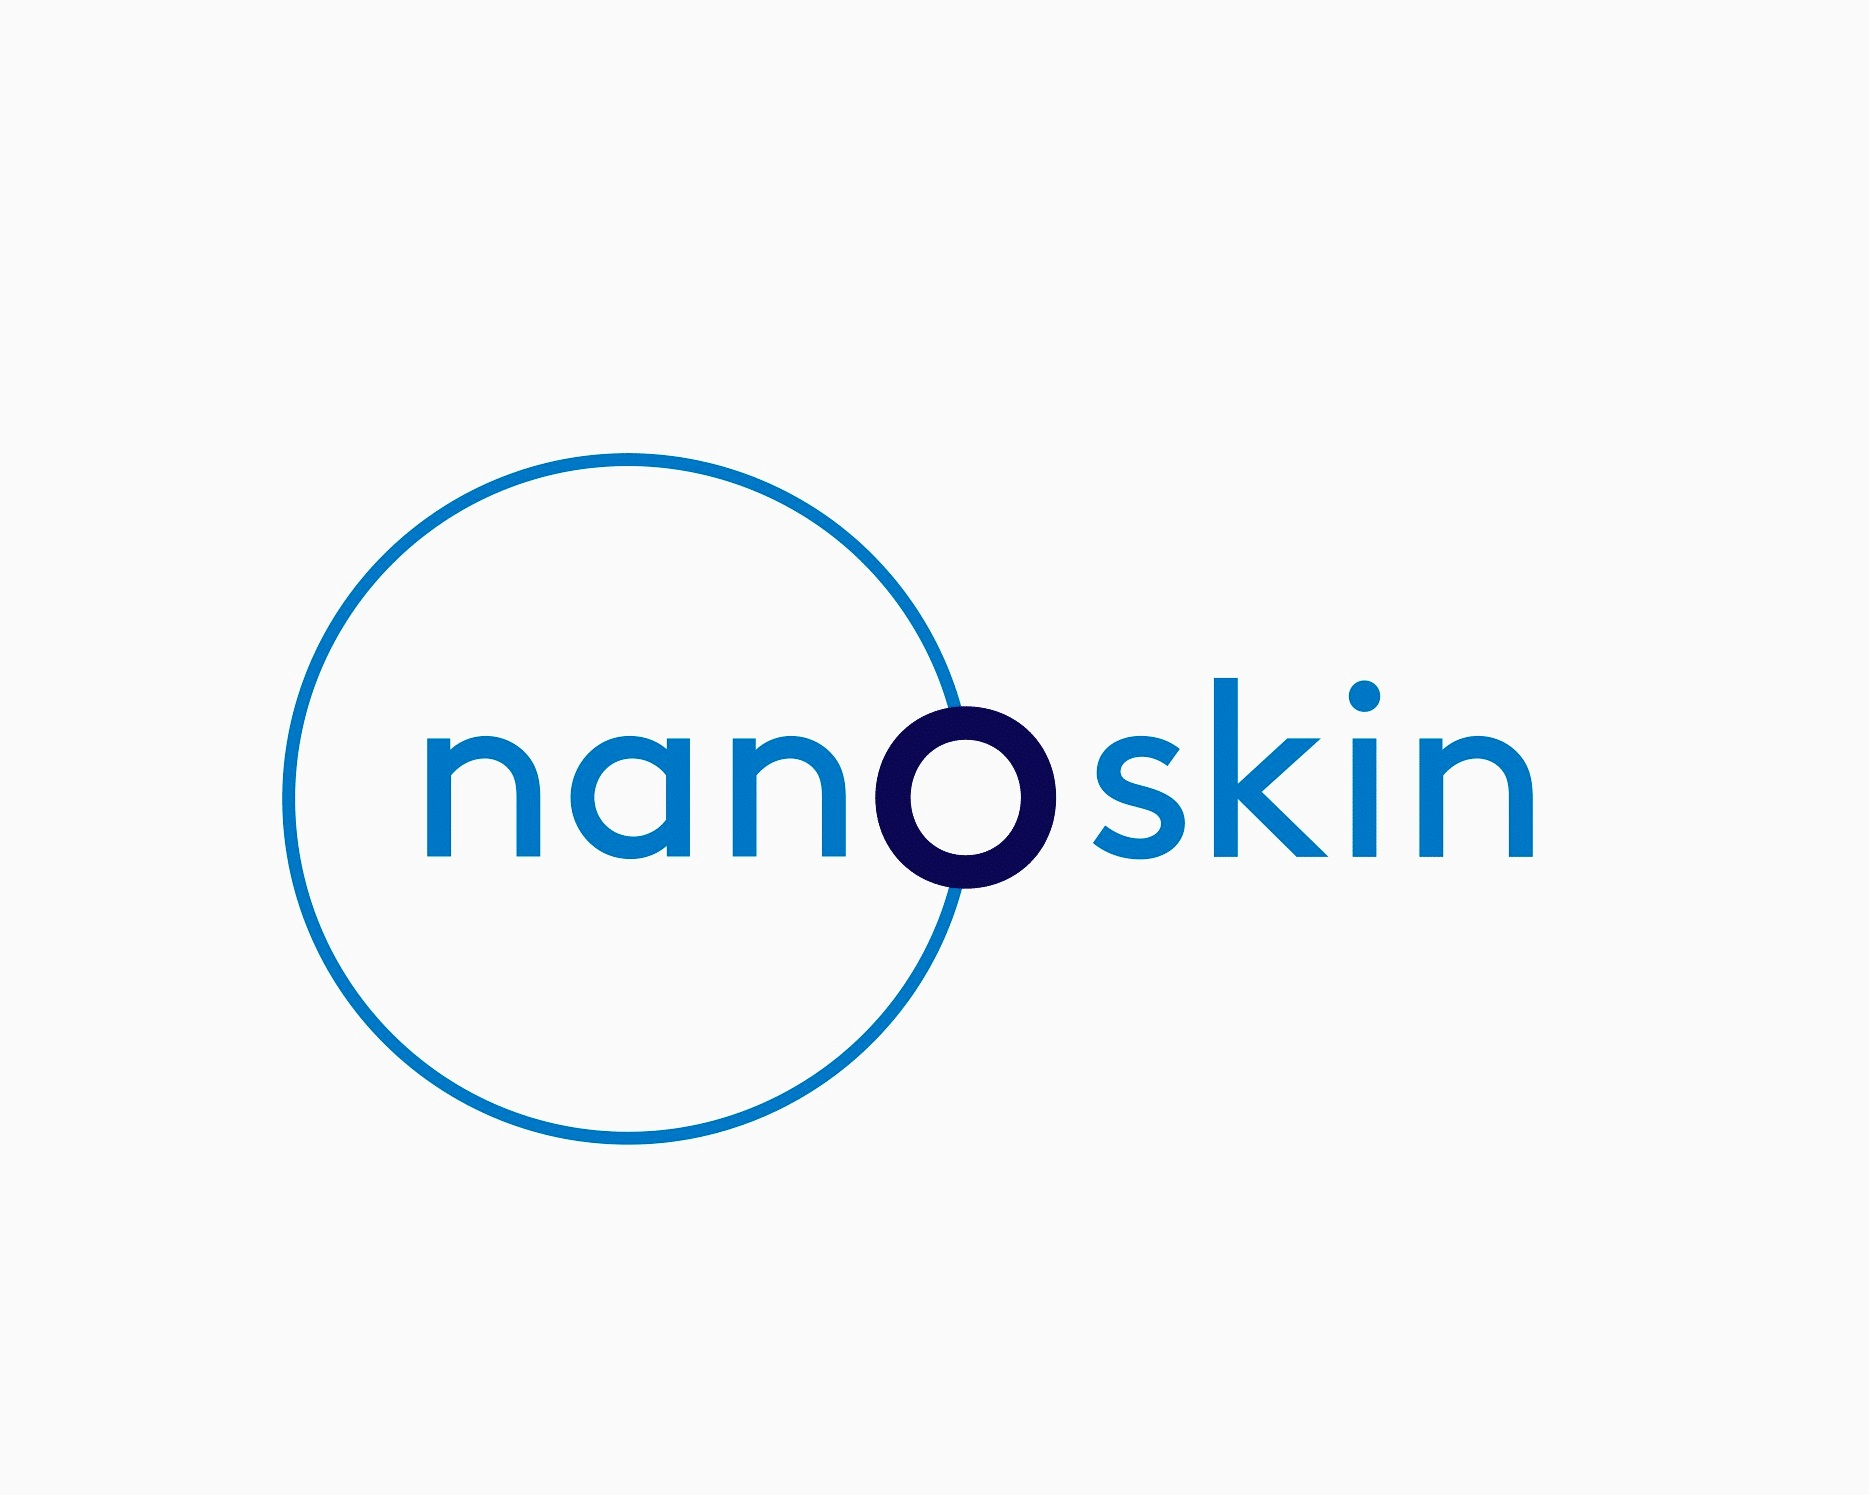 Nanoskin is an industrial multi-nozzle electrospinner designed to directly coat clothes with nanofibers. Harvesting nanotechnology to change the structure of shirts, pants and socks by gaining advanced physical, chemical and biological properties. Transferring our daily apparel to waterproof, breathable, protective and antibacterial from the outside, with a drug delivery system impregnated with active pharmaceutical ingredients from the inside to heal wounds, burns and diabetes ulcers. Nanoskin merged medicine within our clothes, one nanofiber at a time.